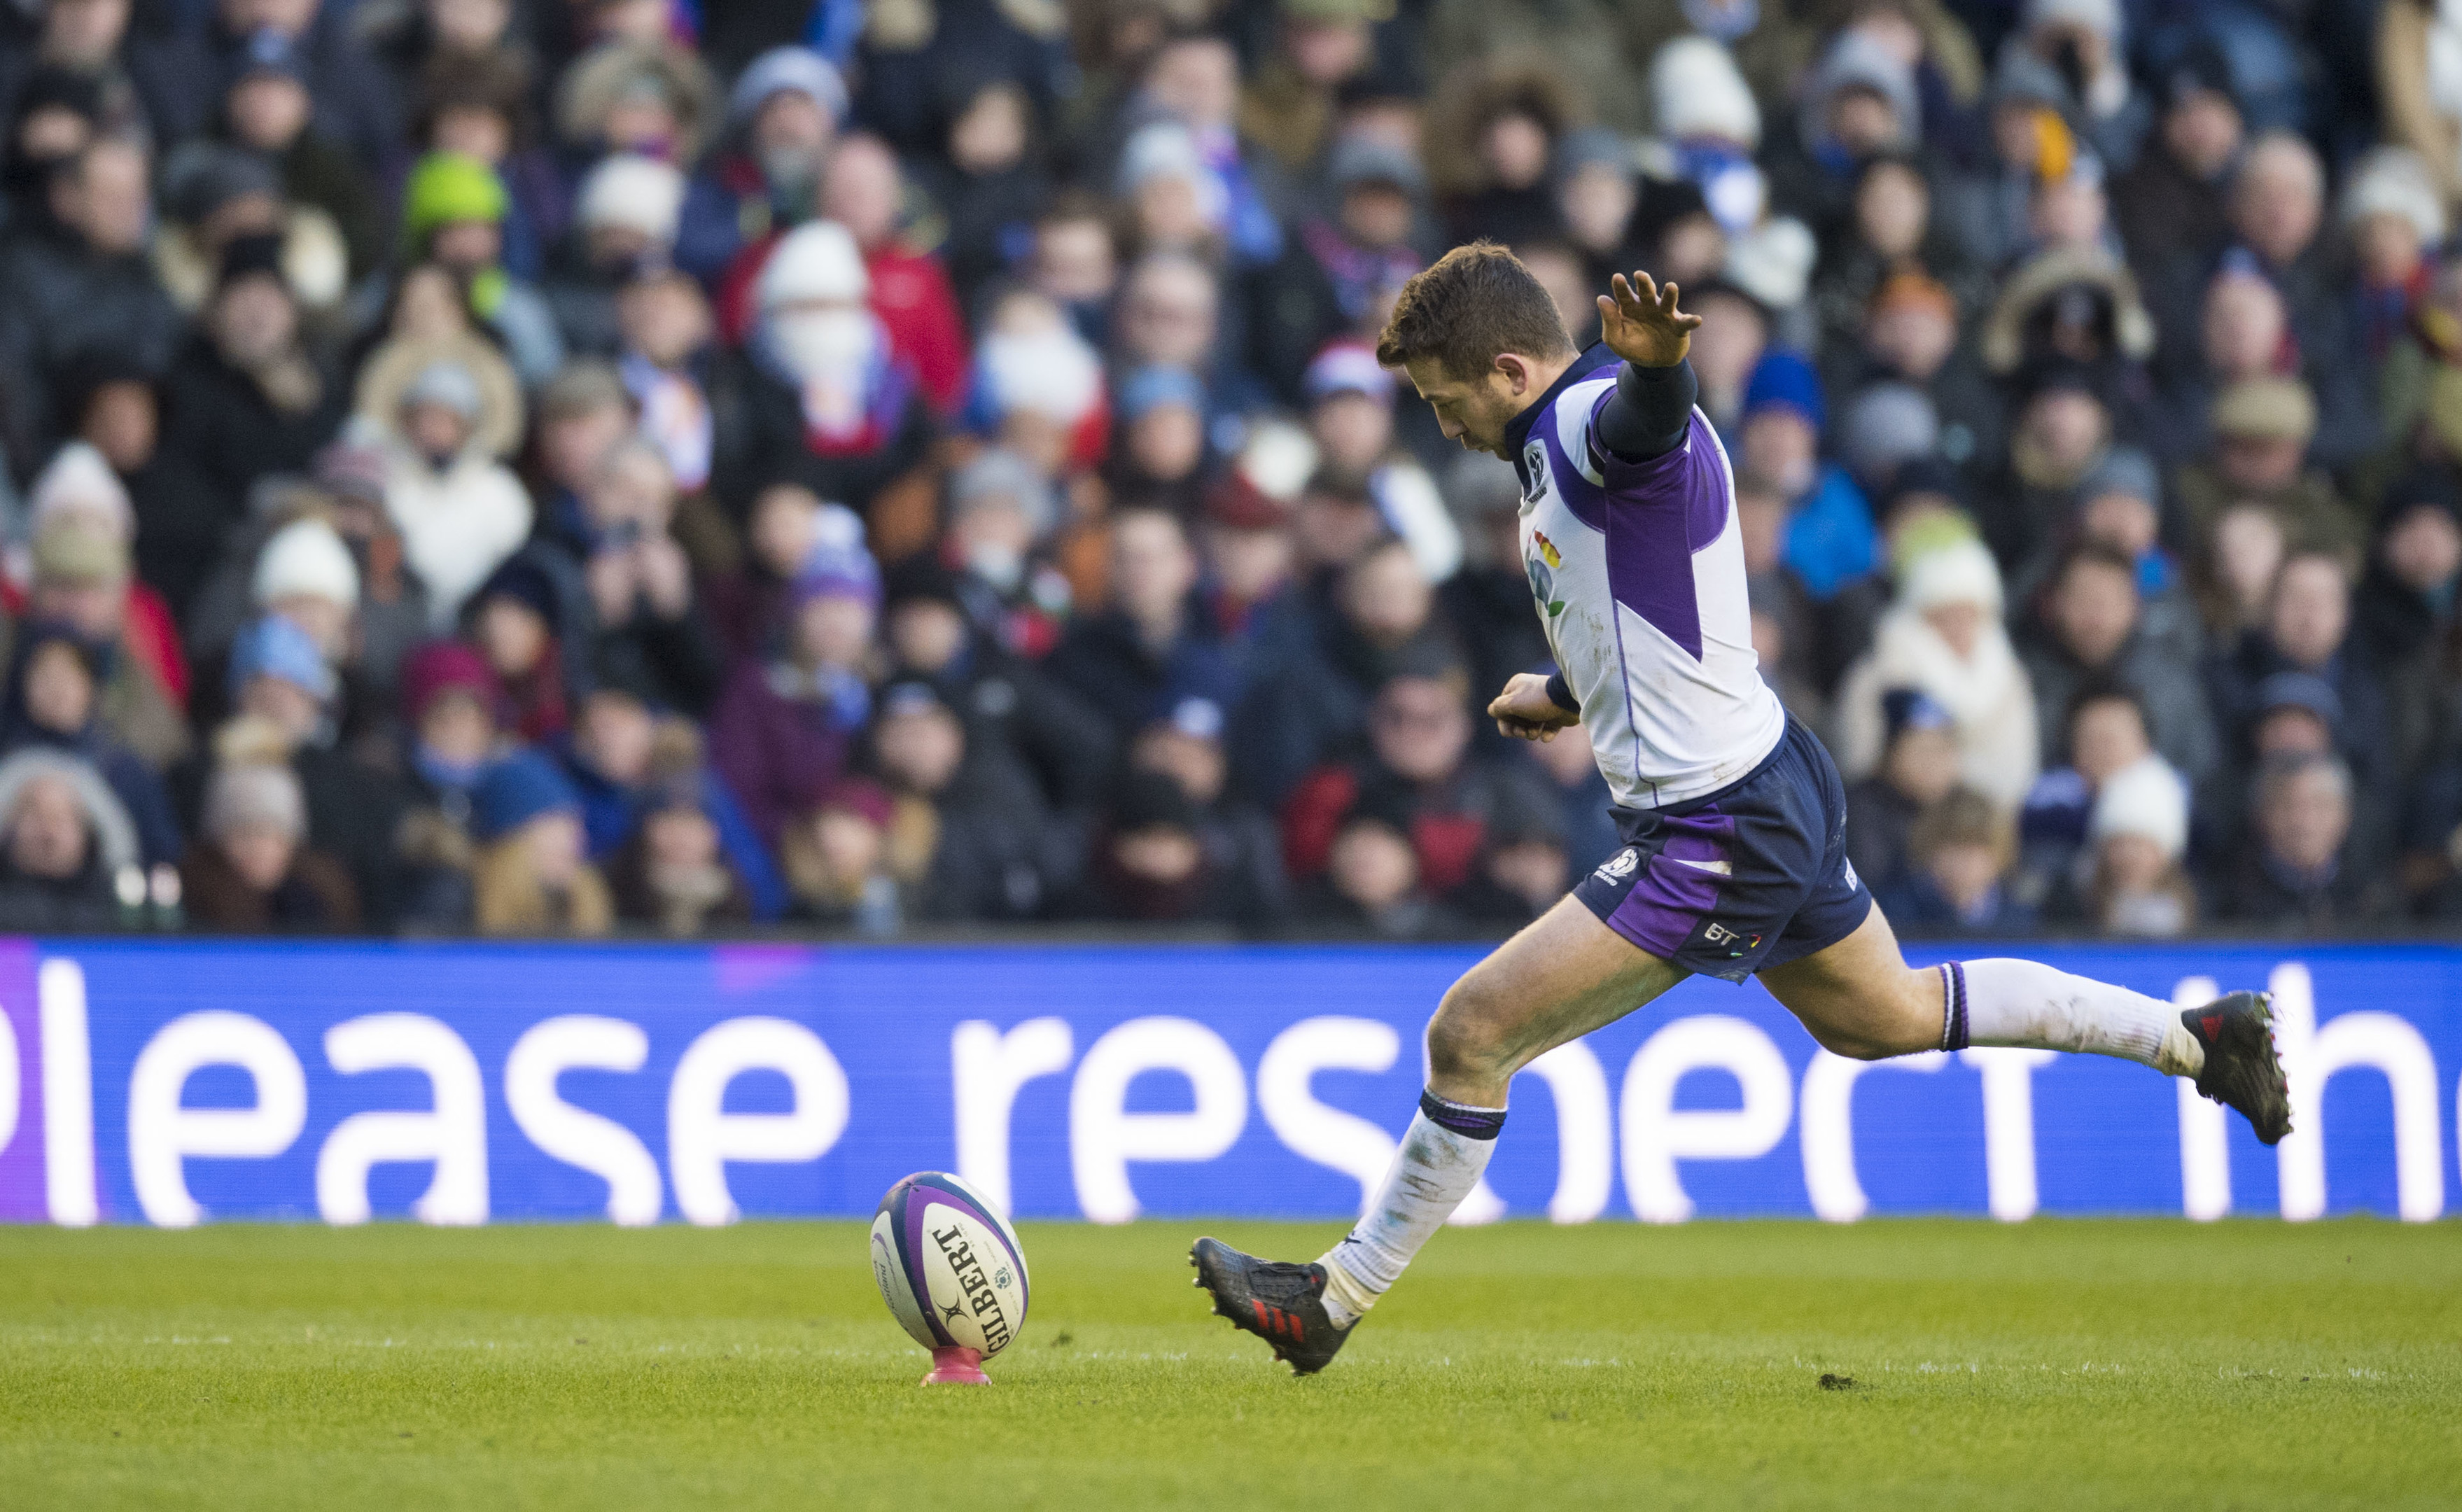 Scotland's Greig Laidlaw kicks the penalty that put Scotland 29-26 ahead at Murrayfield.